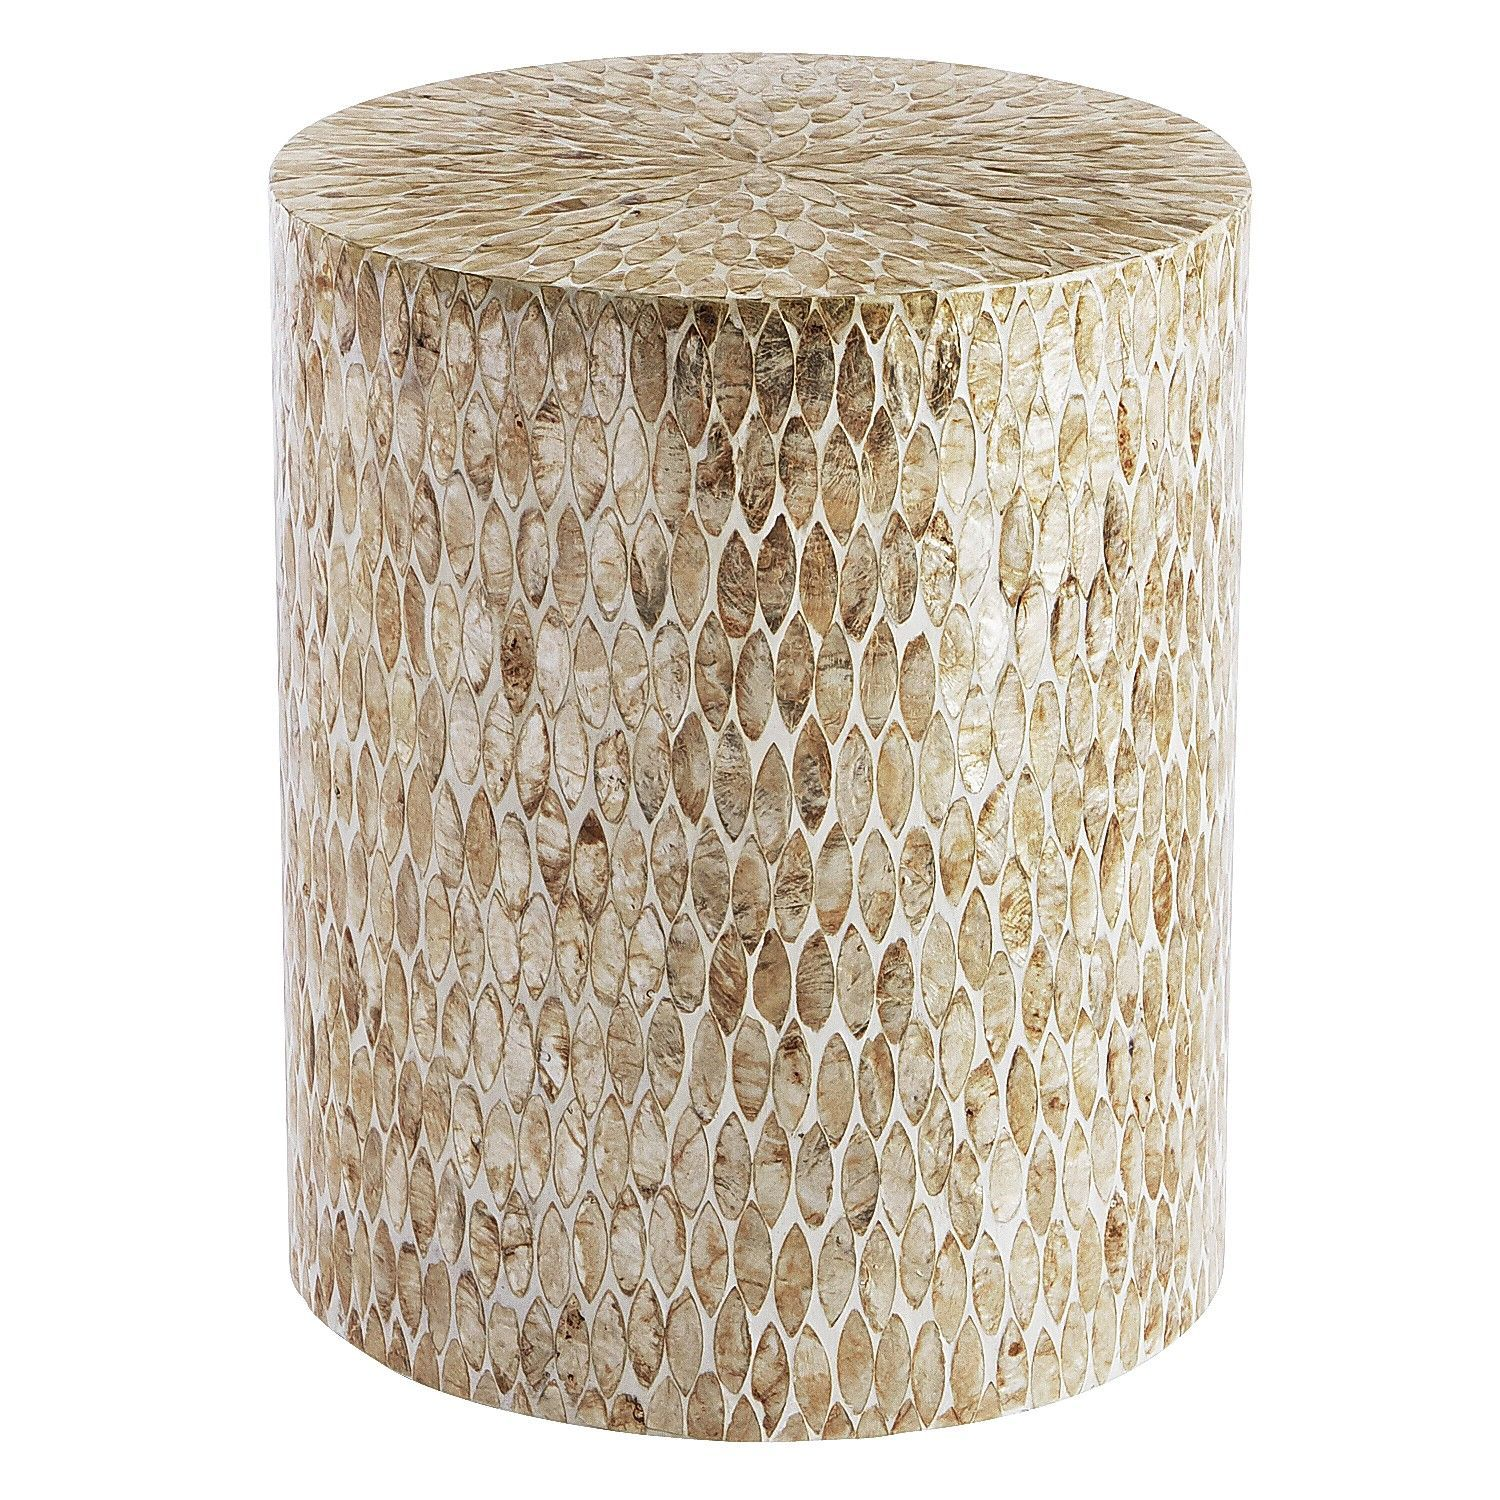 capiz round drum accent table tables coffee multi colored wood tiffany lily lamp white wooden bedside outdoor side wicker resin patio furniture cupcake carrier target small